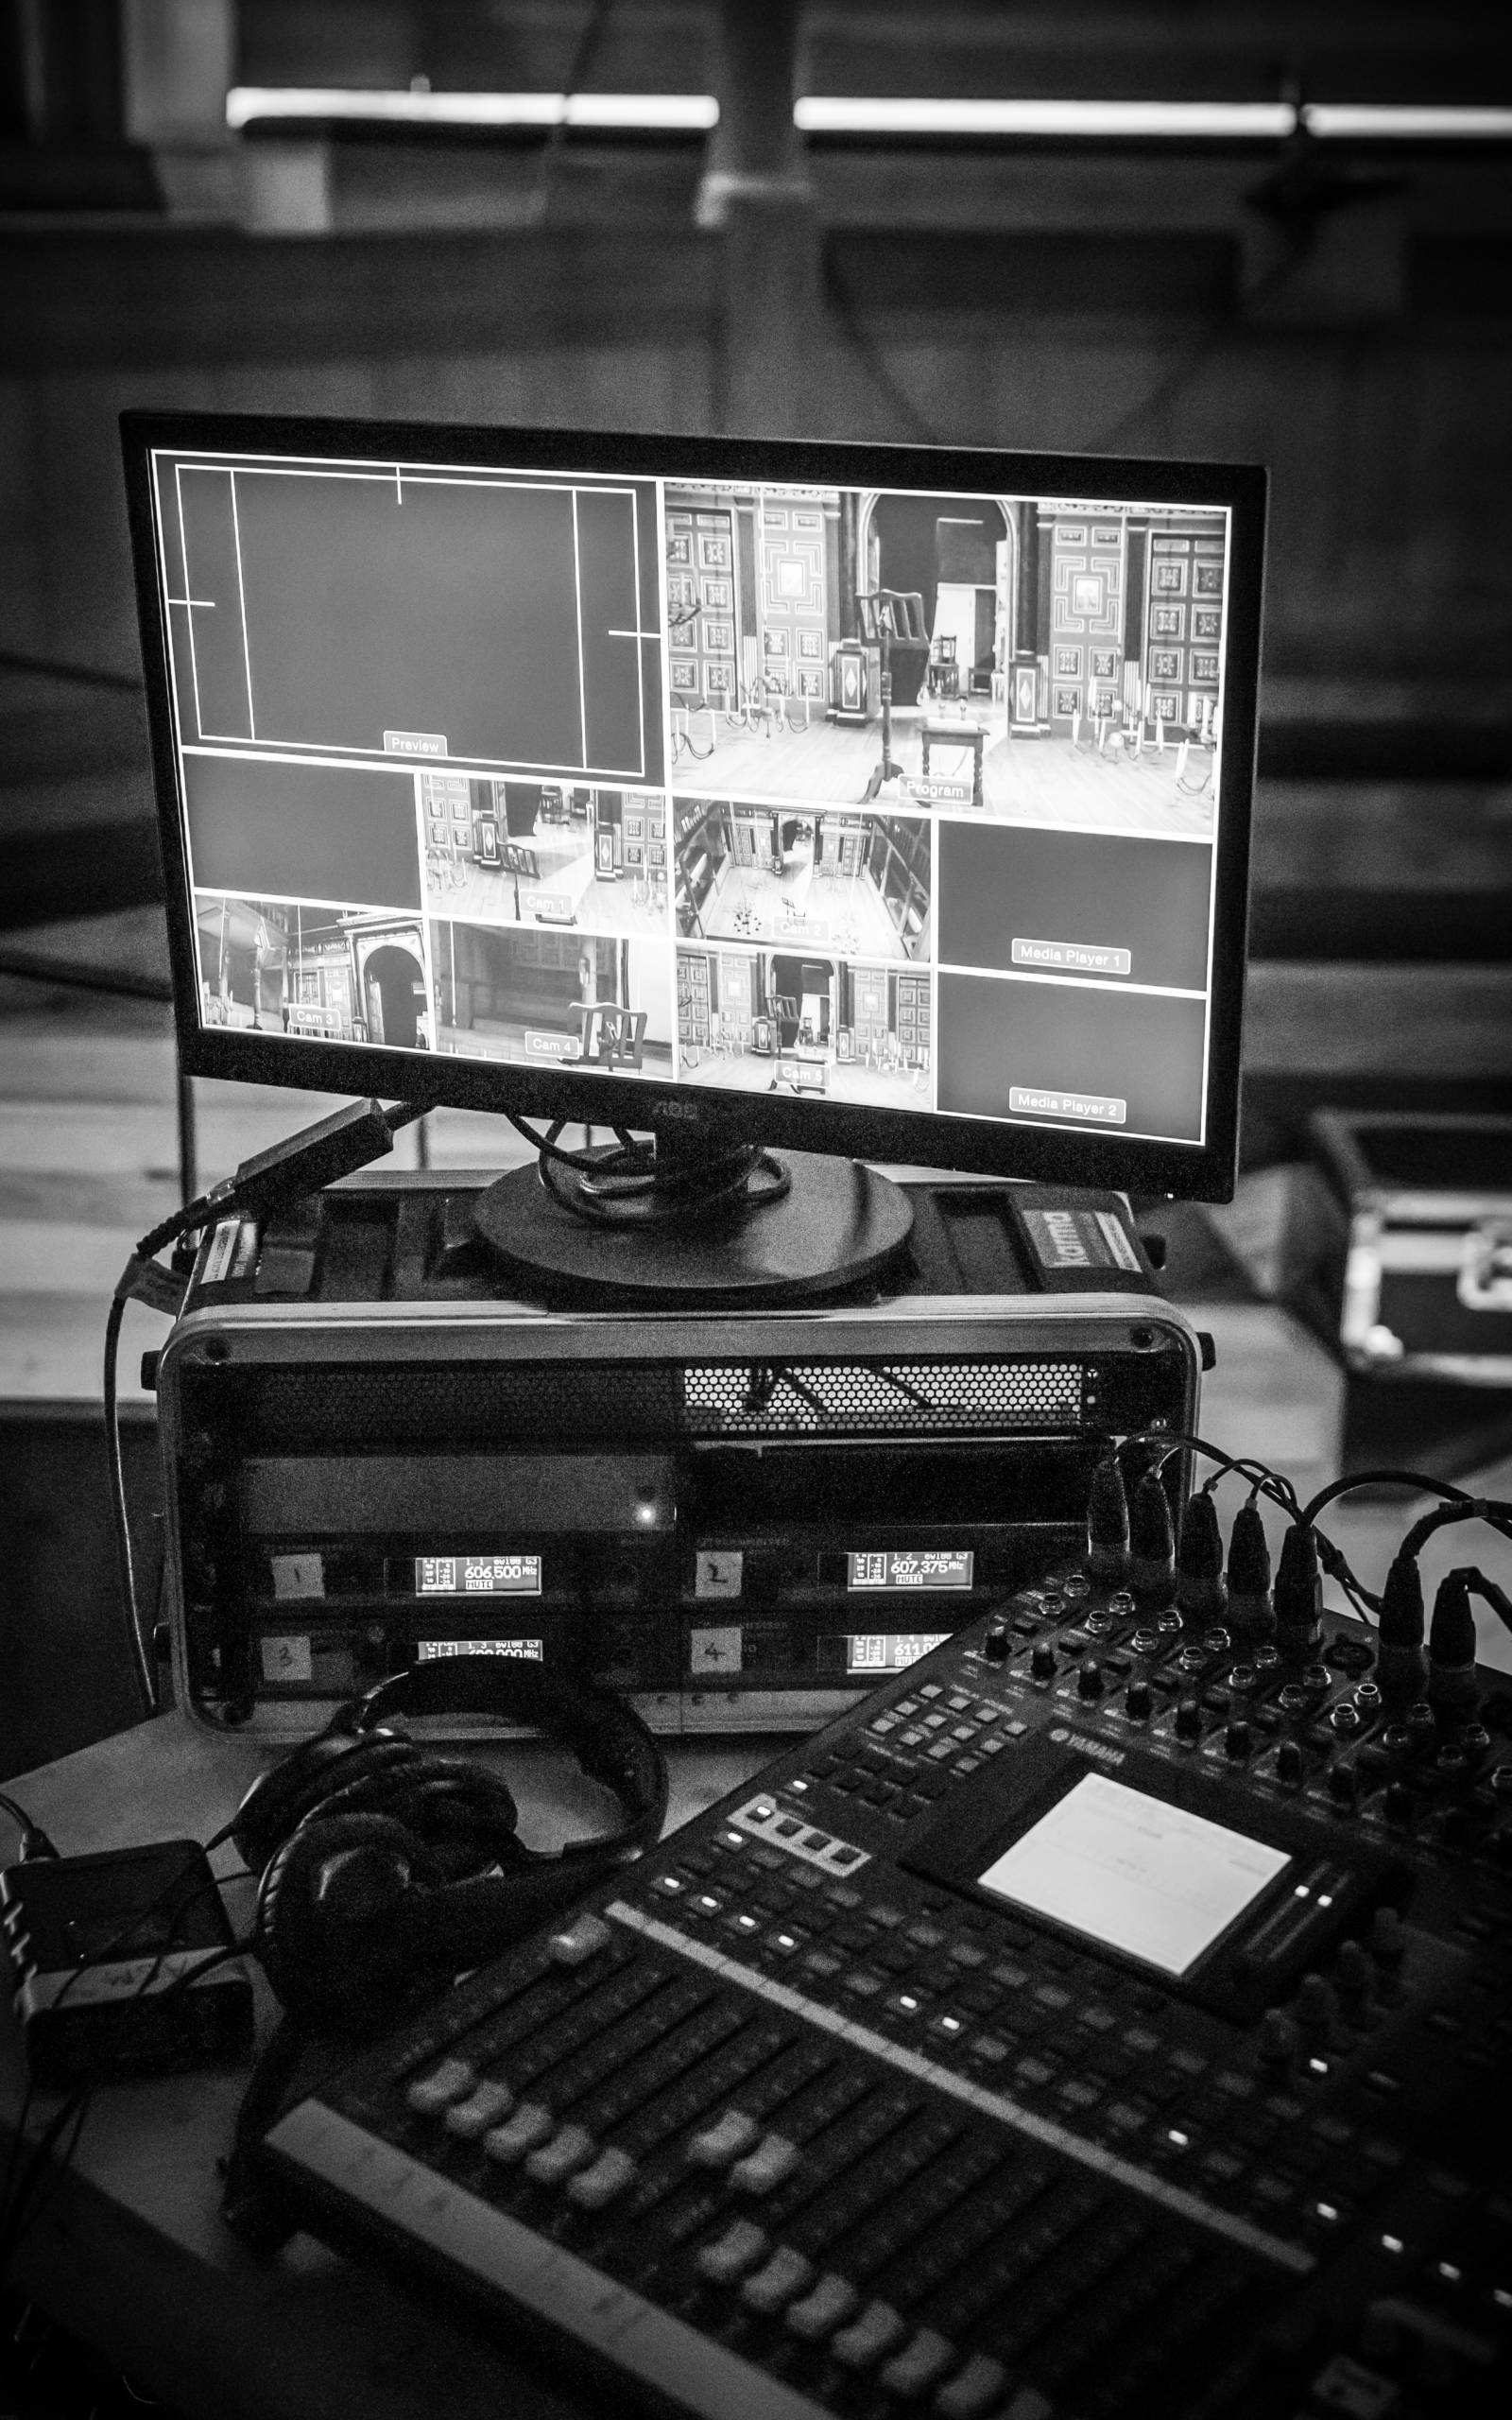 A monochrome image of recording equipment and a screen showing different camera angles